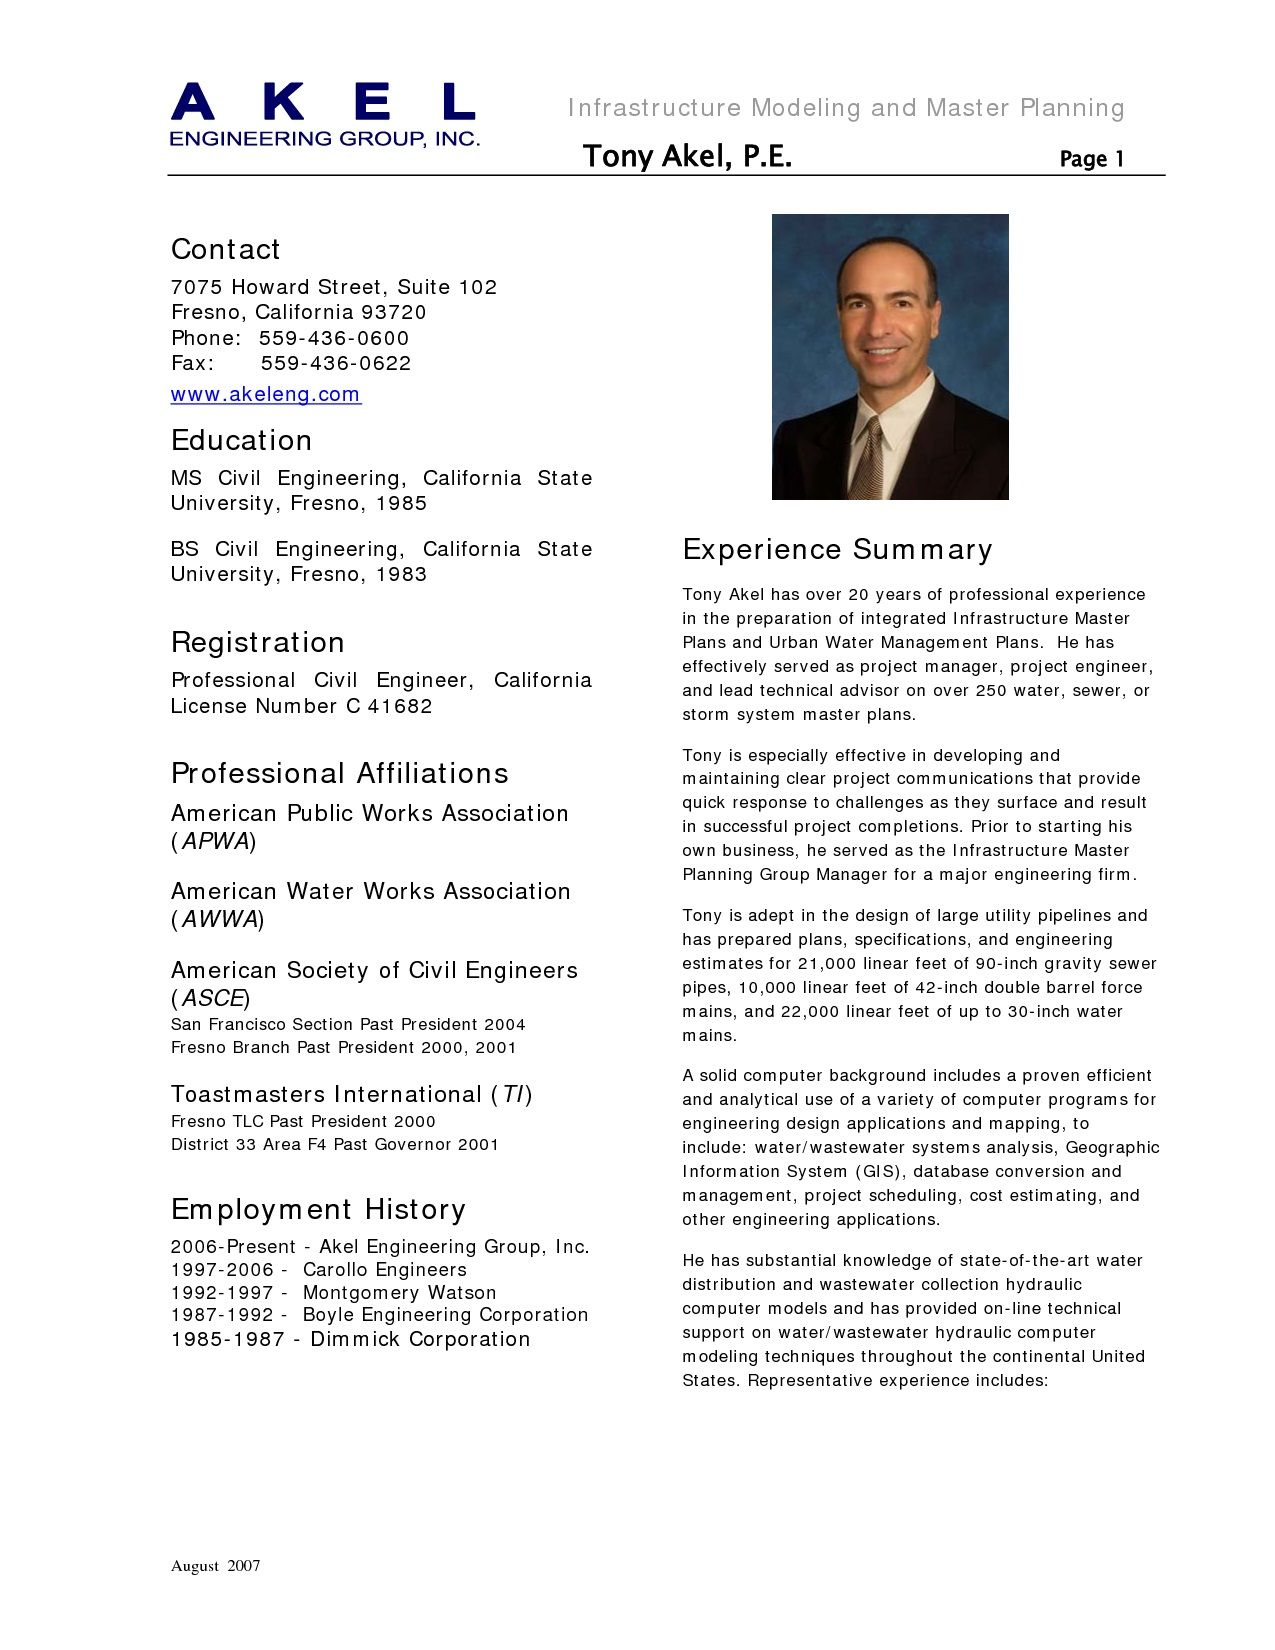 Civil Engineer Resume Http Jobresumesample Com 367 Civil